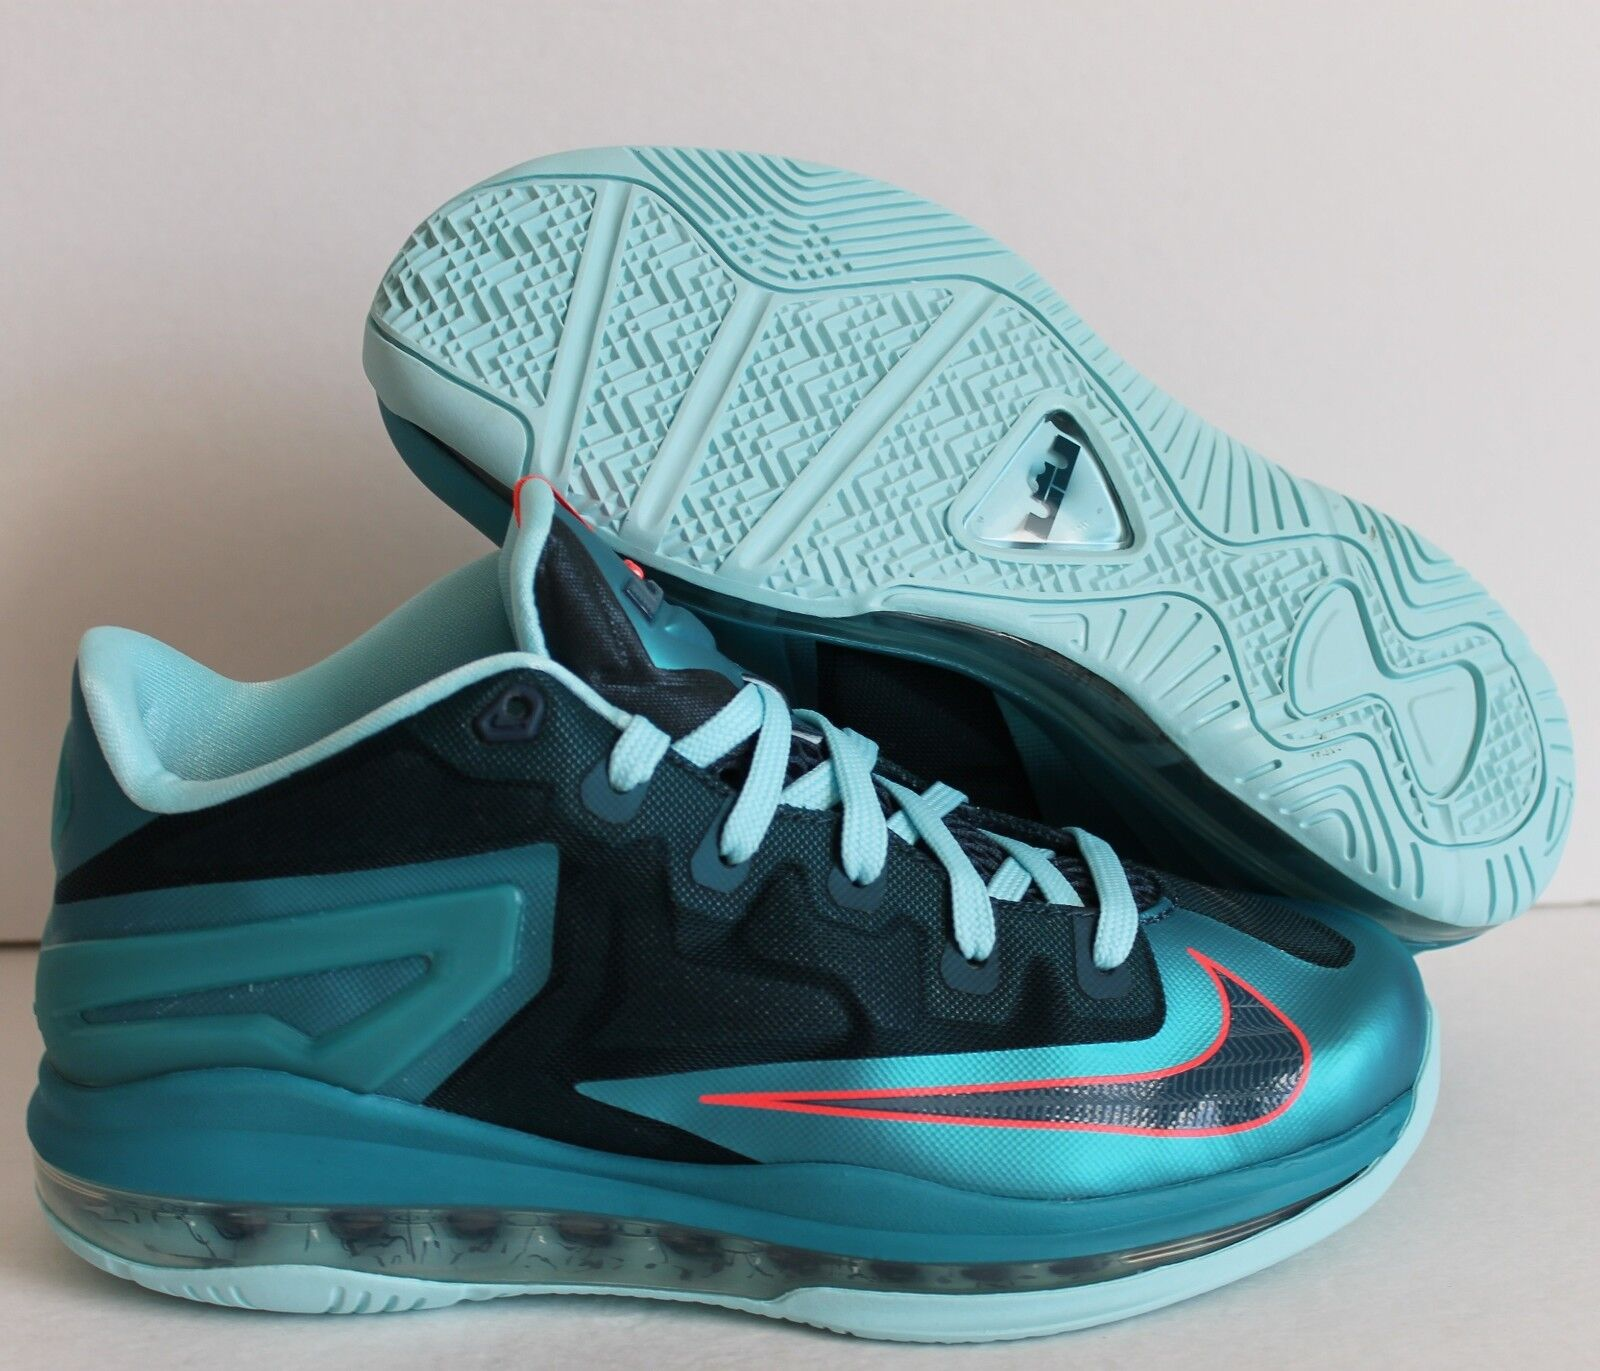 ]NIKE LEBRON XI 11 LOW TRIBAL GREEN SZ 7Y-Donna SZ 8.5 [644534-301]